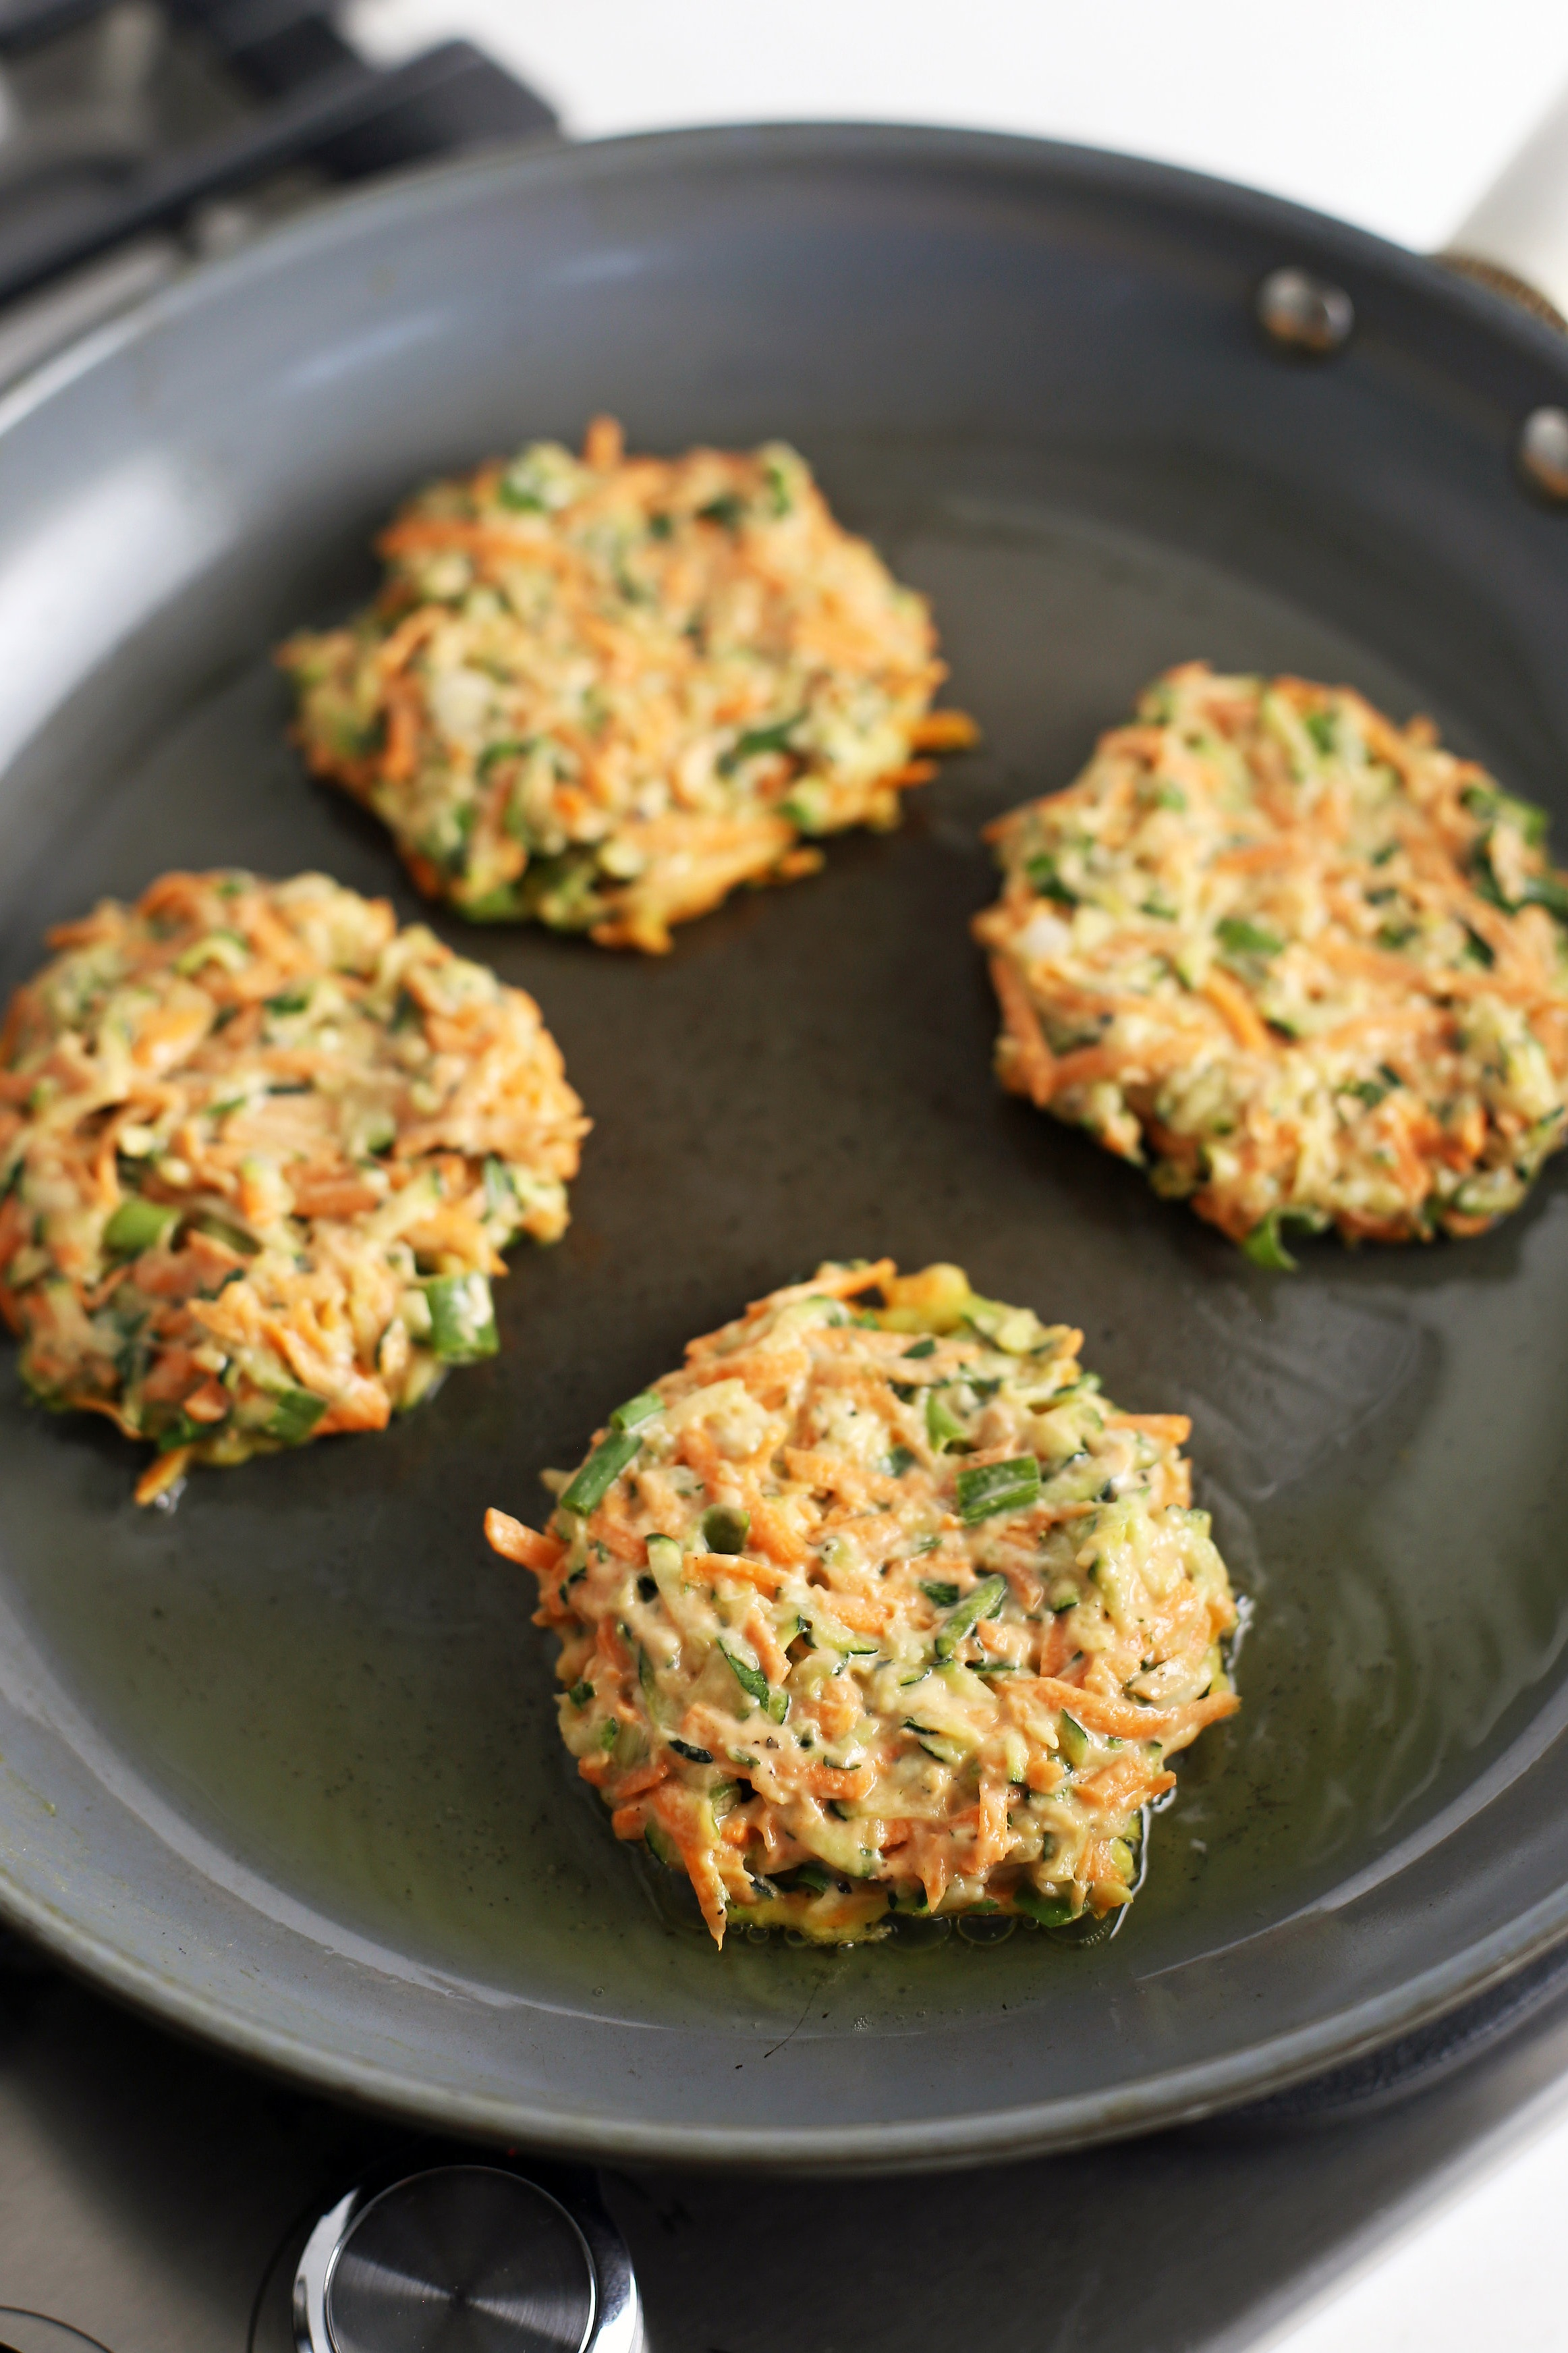 Four zucchini carrot pancakes frying in a small amount of olive oil in a large frying pan.